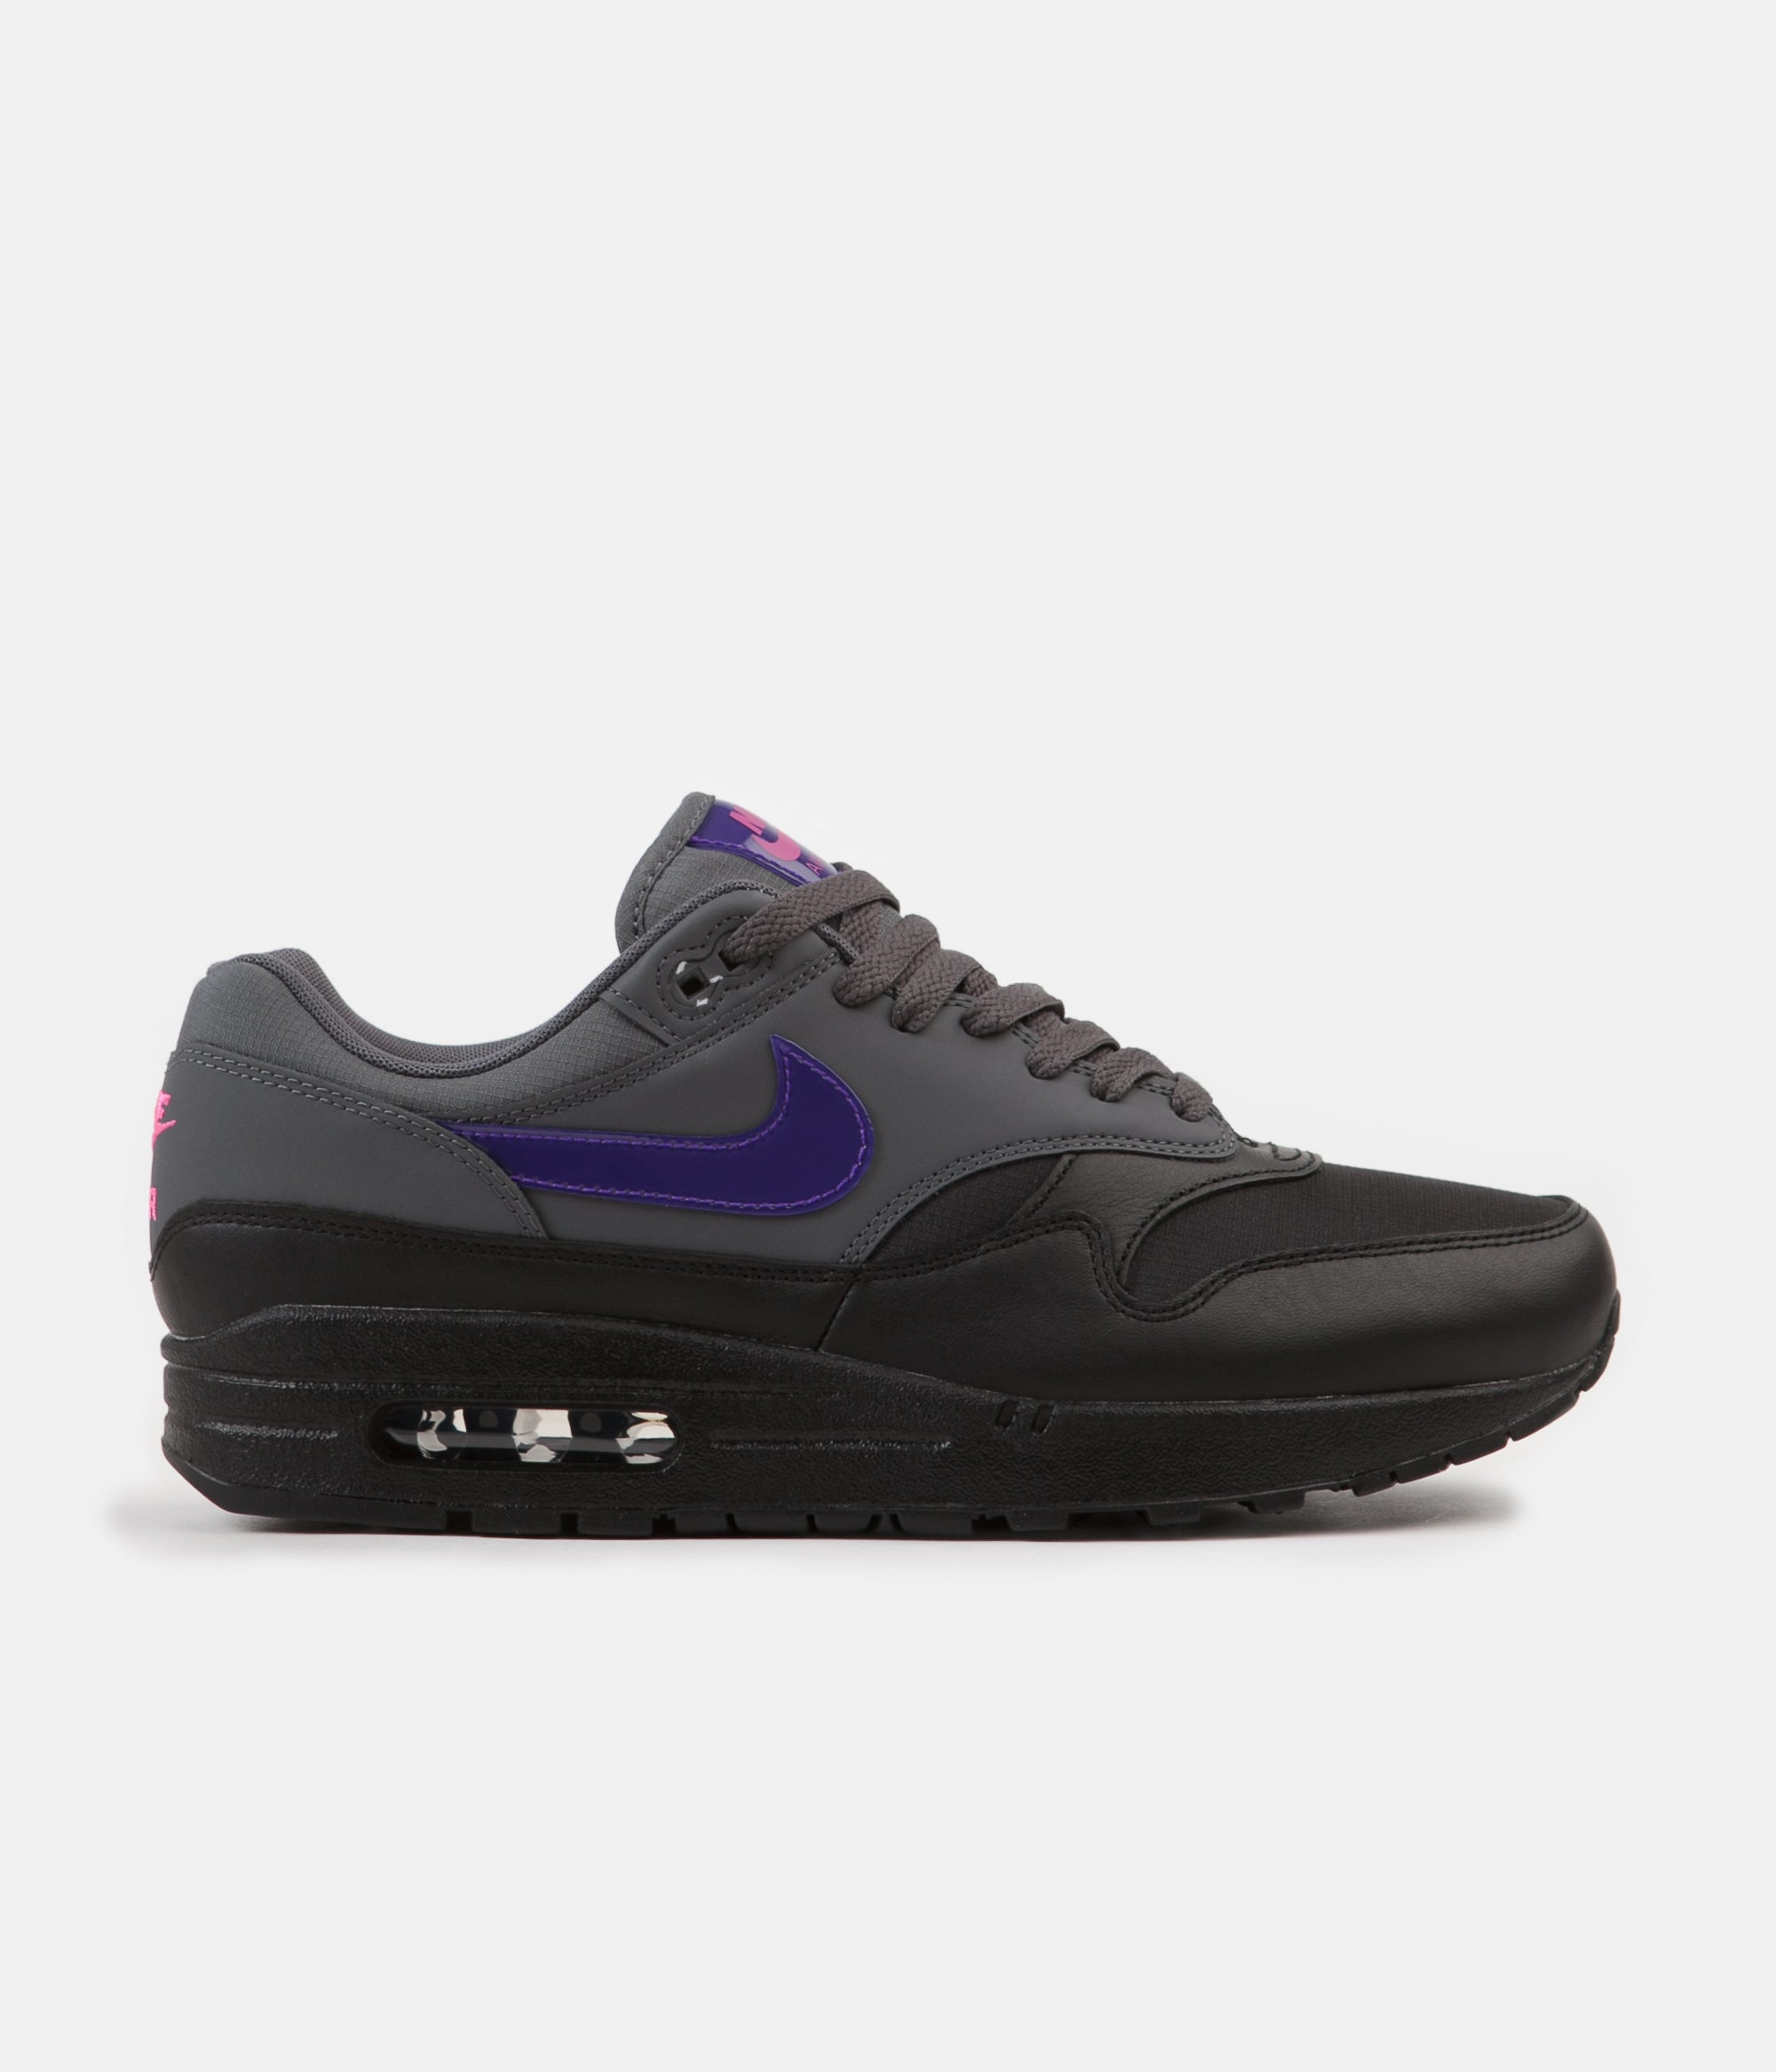 differently 6eb32 82ba7 ... Nike Air Max 1 Shoes - Dark Grey  Fierce Purple - Black - Pink Blast  ...